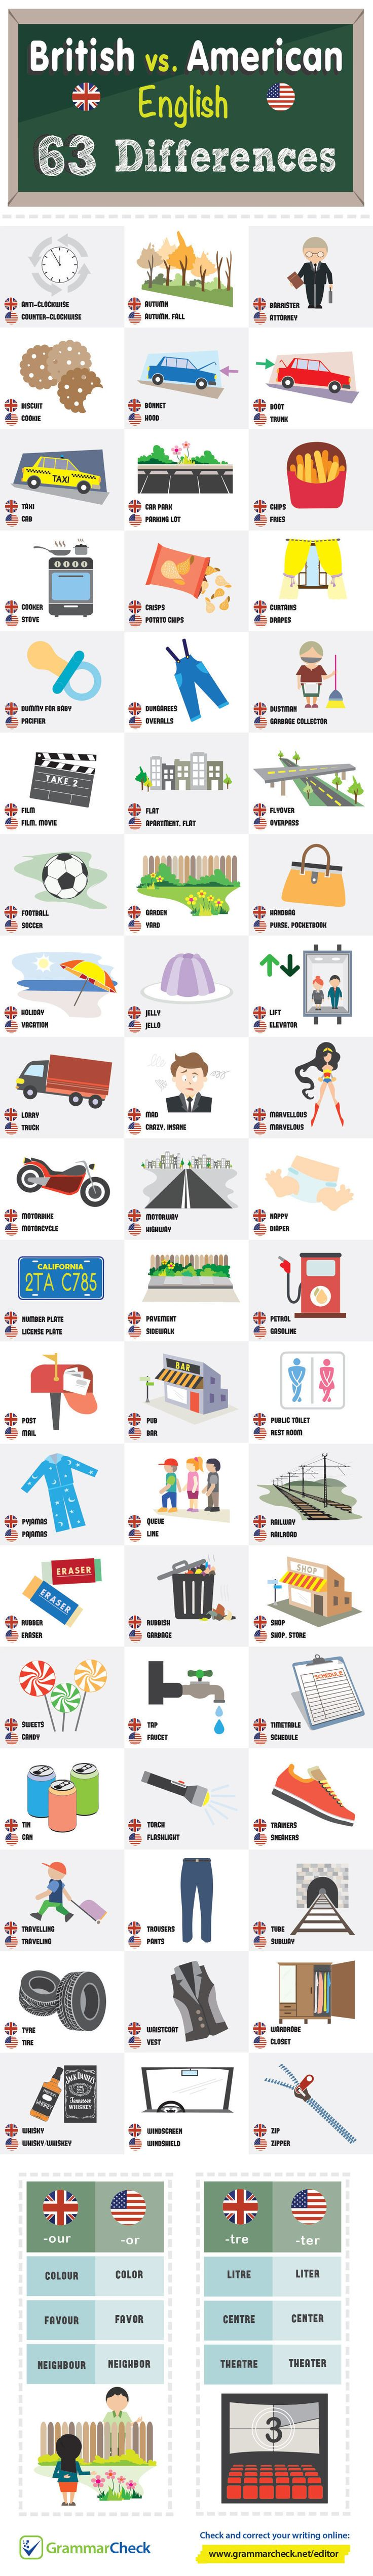 best ideas about spelling and grammar check this is a useful list for differences in spelling and word usage in british and american english source for infographic grammar check if you enjoyed this